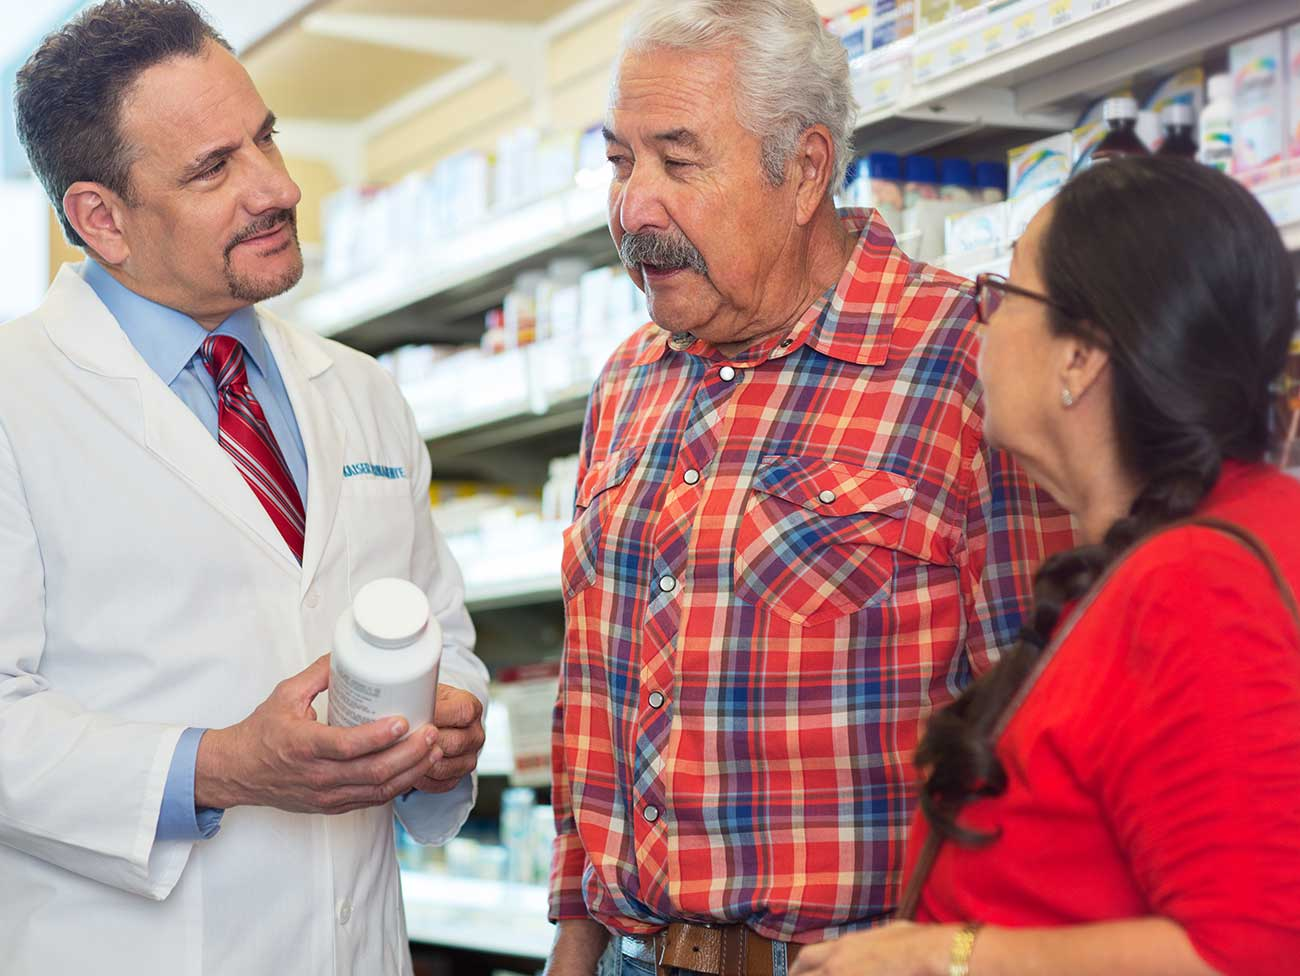 man wearing a white Kaiser Permanente labcoat speaking with an elderly couple in a pharmacy